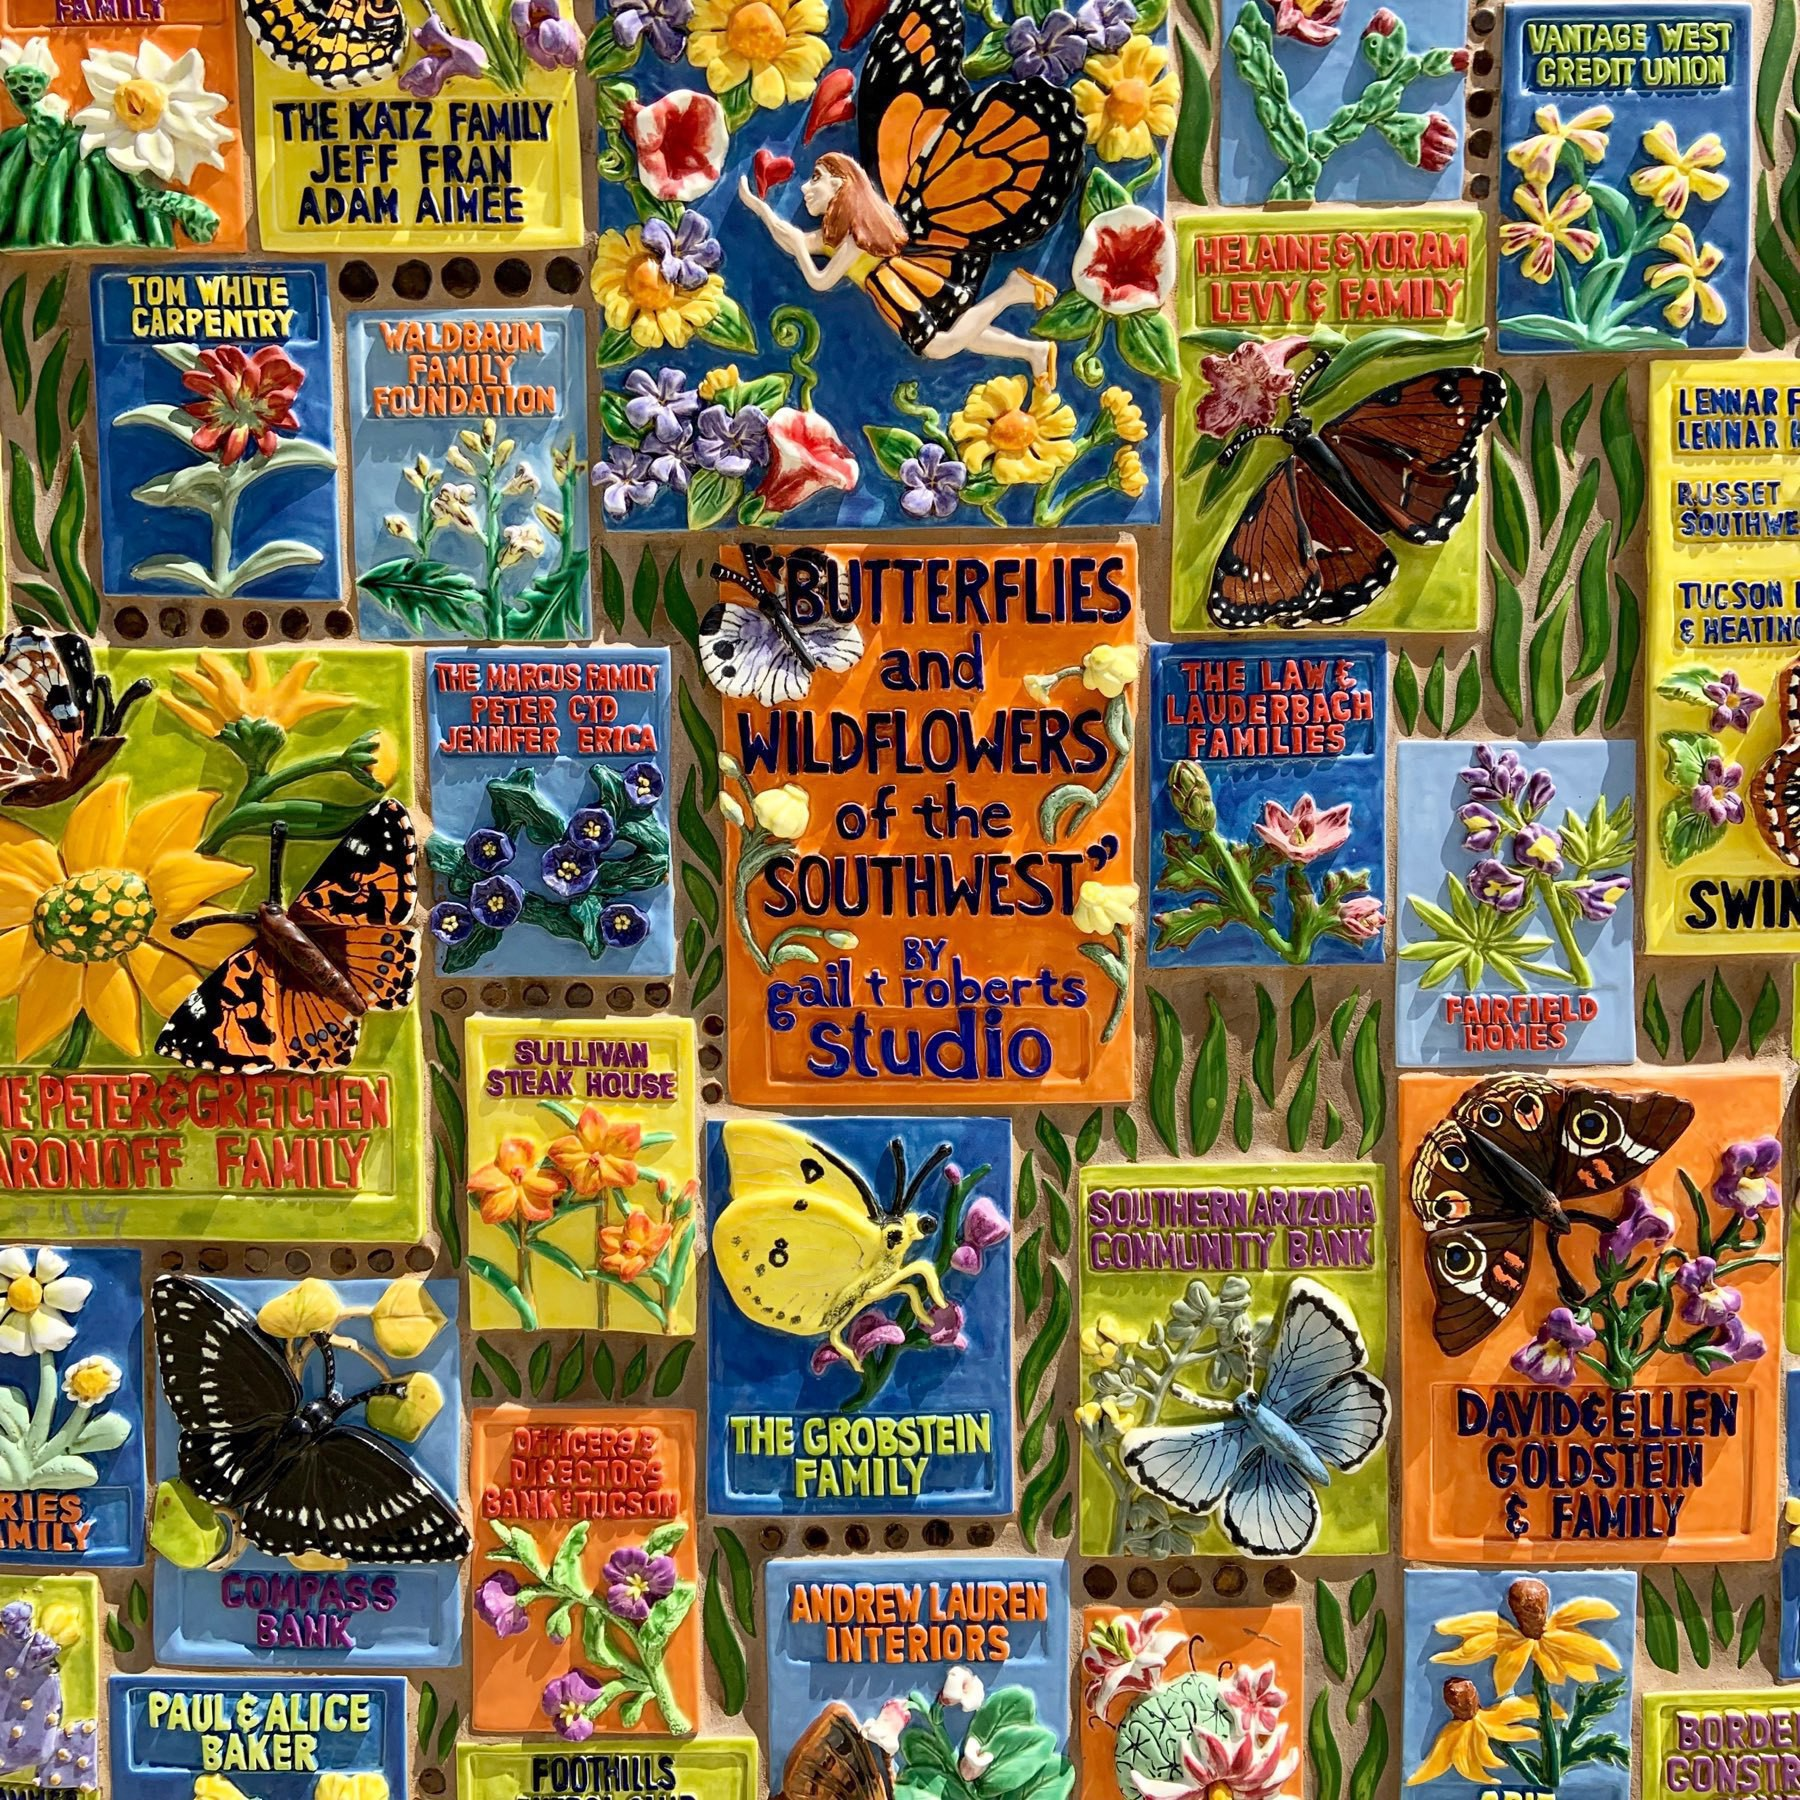 part of a mural by Gail Roberts celebrating the wildflowers and butterflies of the American Southwest